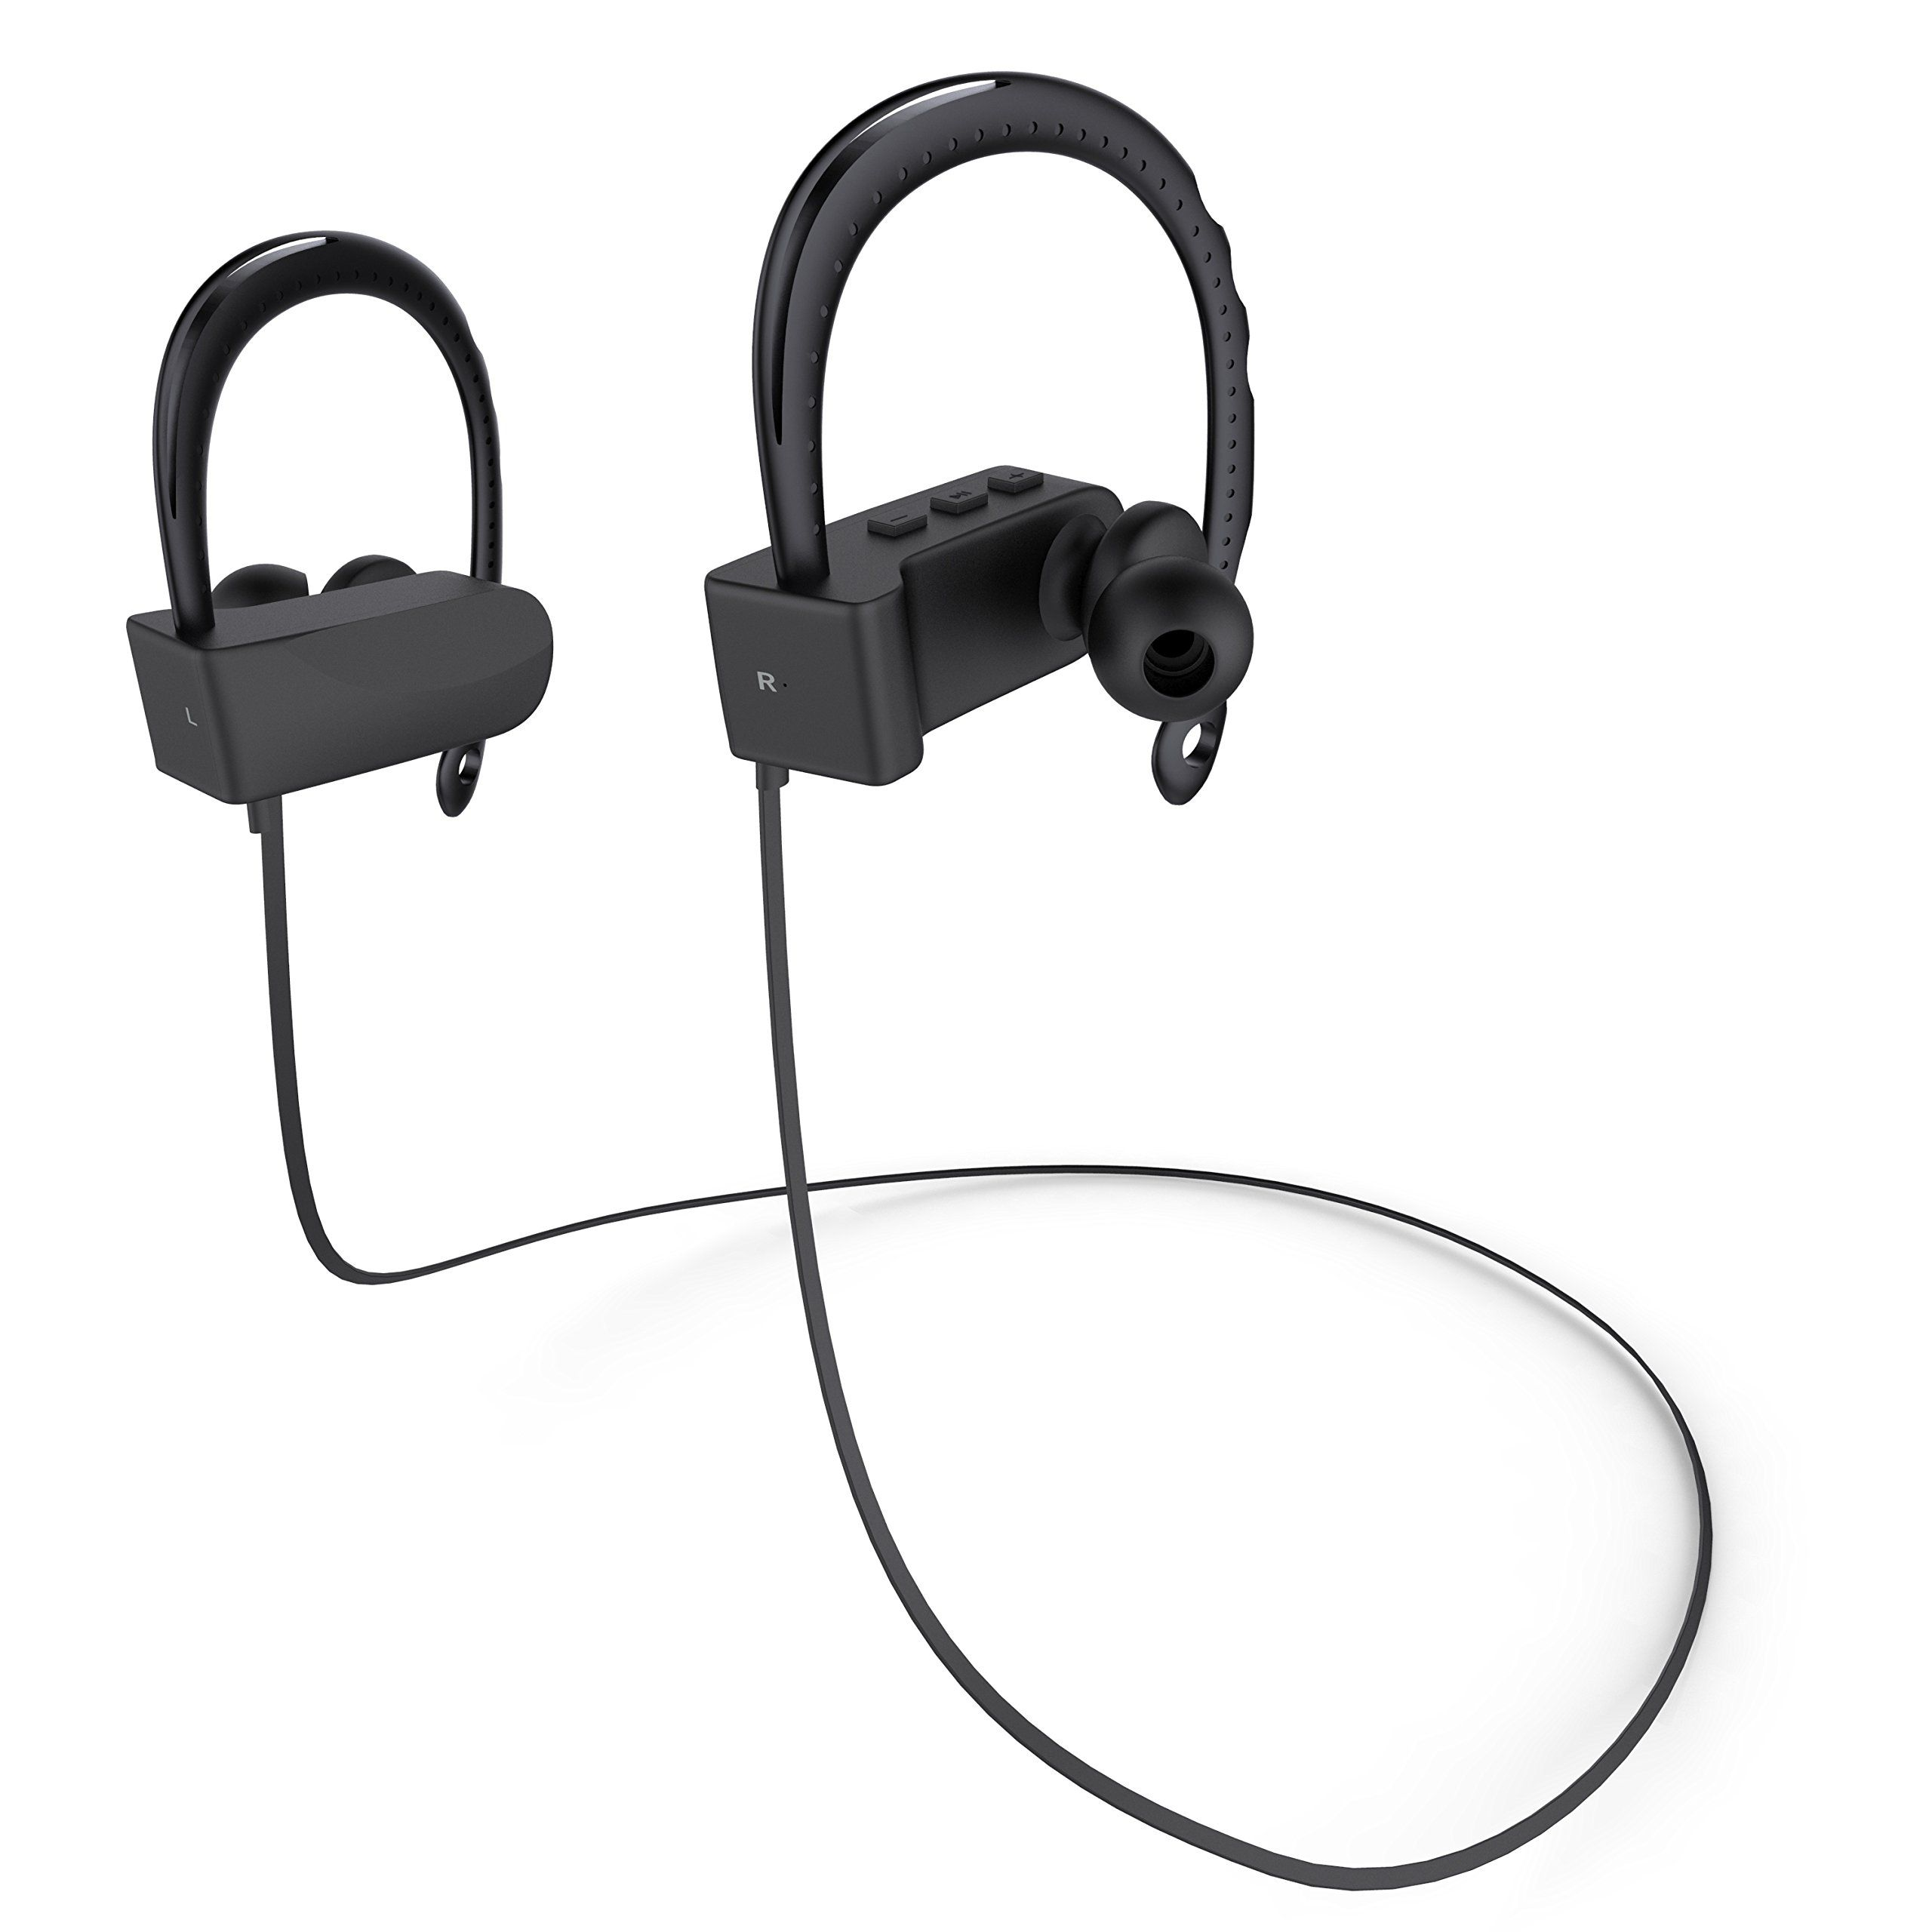 liger black earbuds mic noise comforter bluetooth comfortable sweatproof with pin cancelling headphones blaze